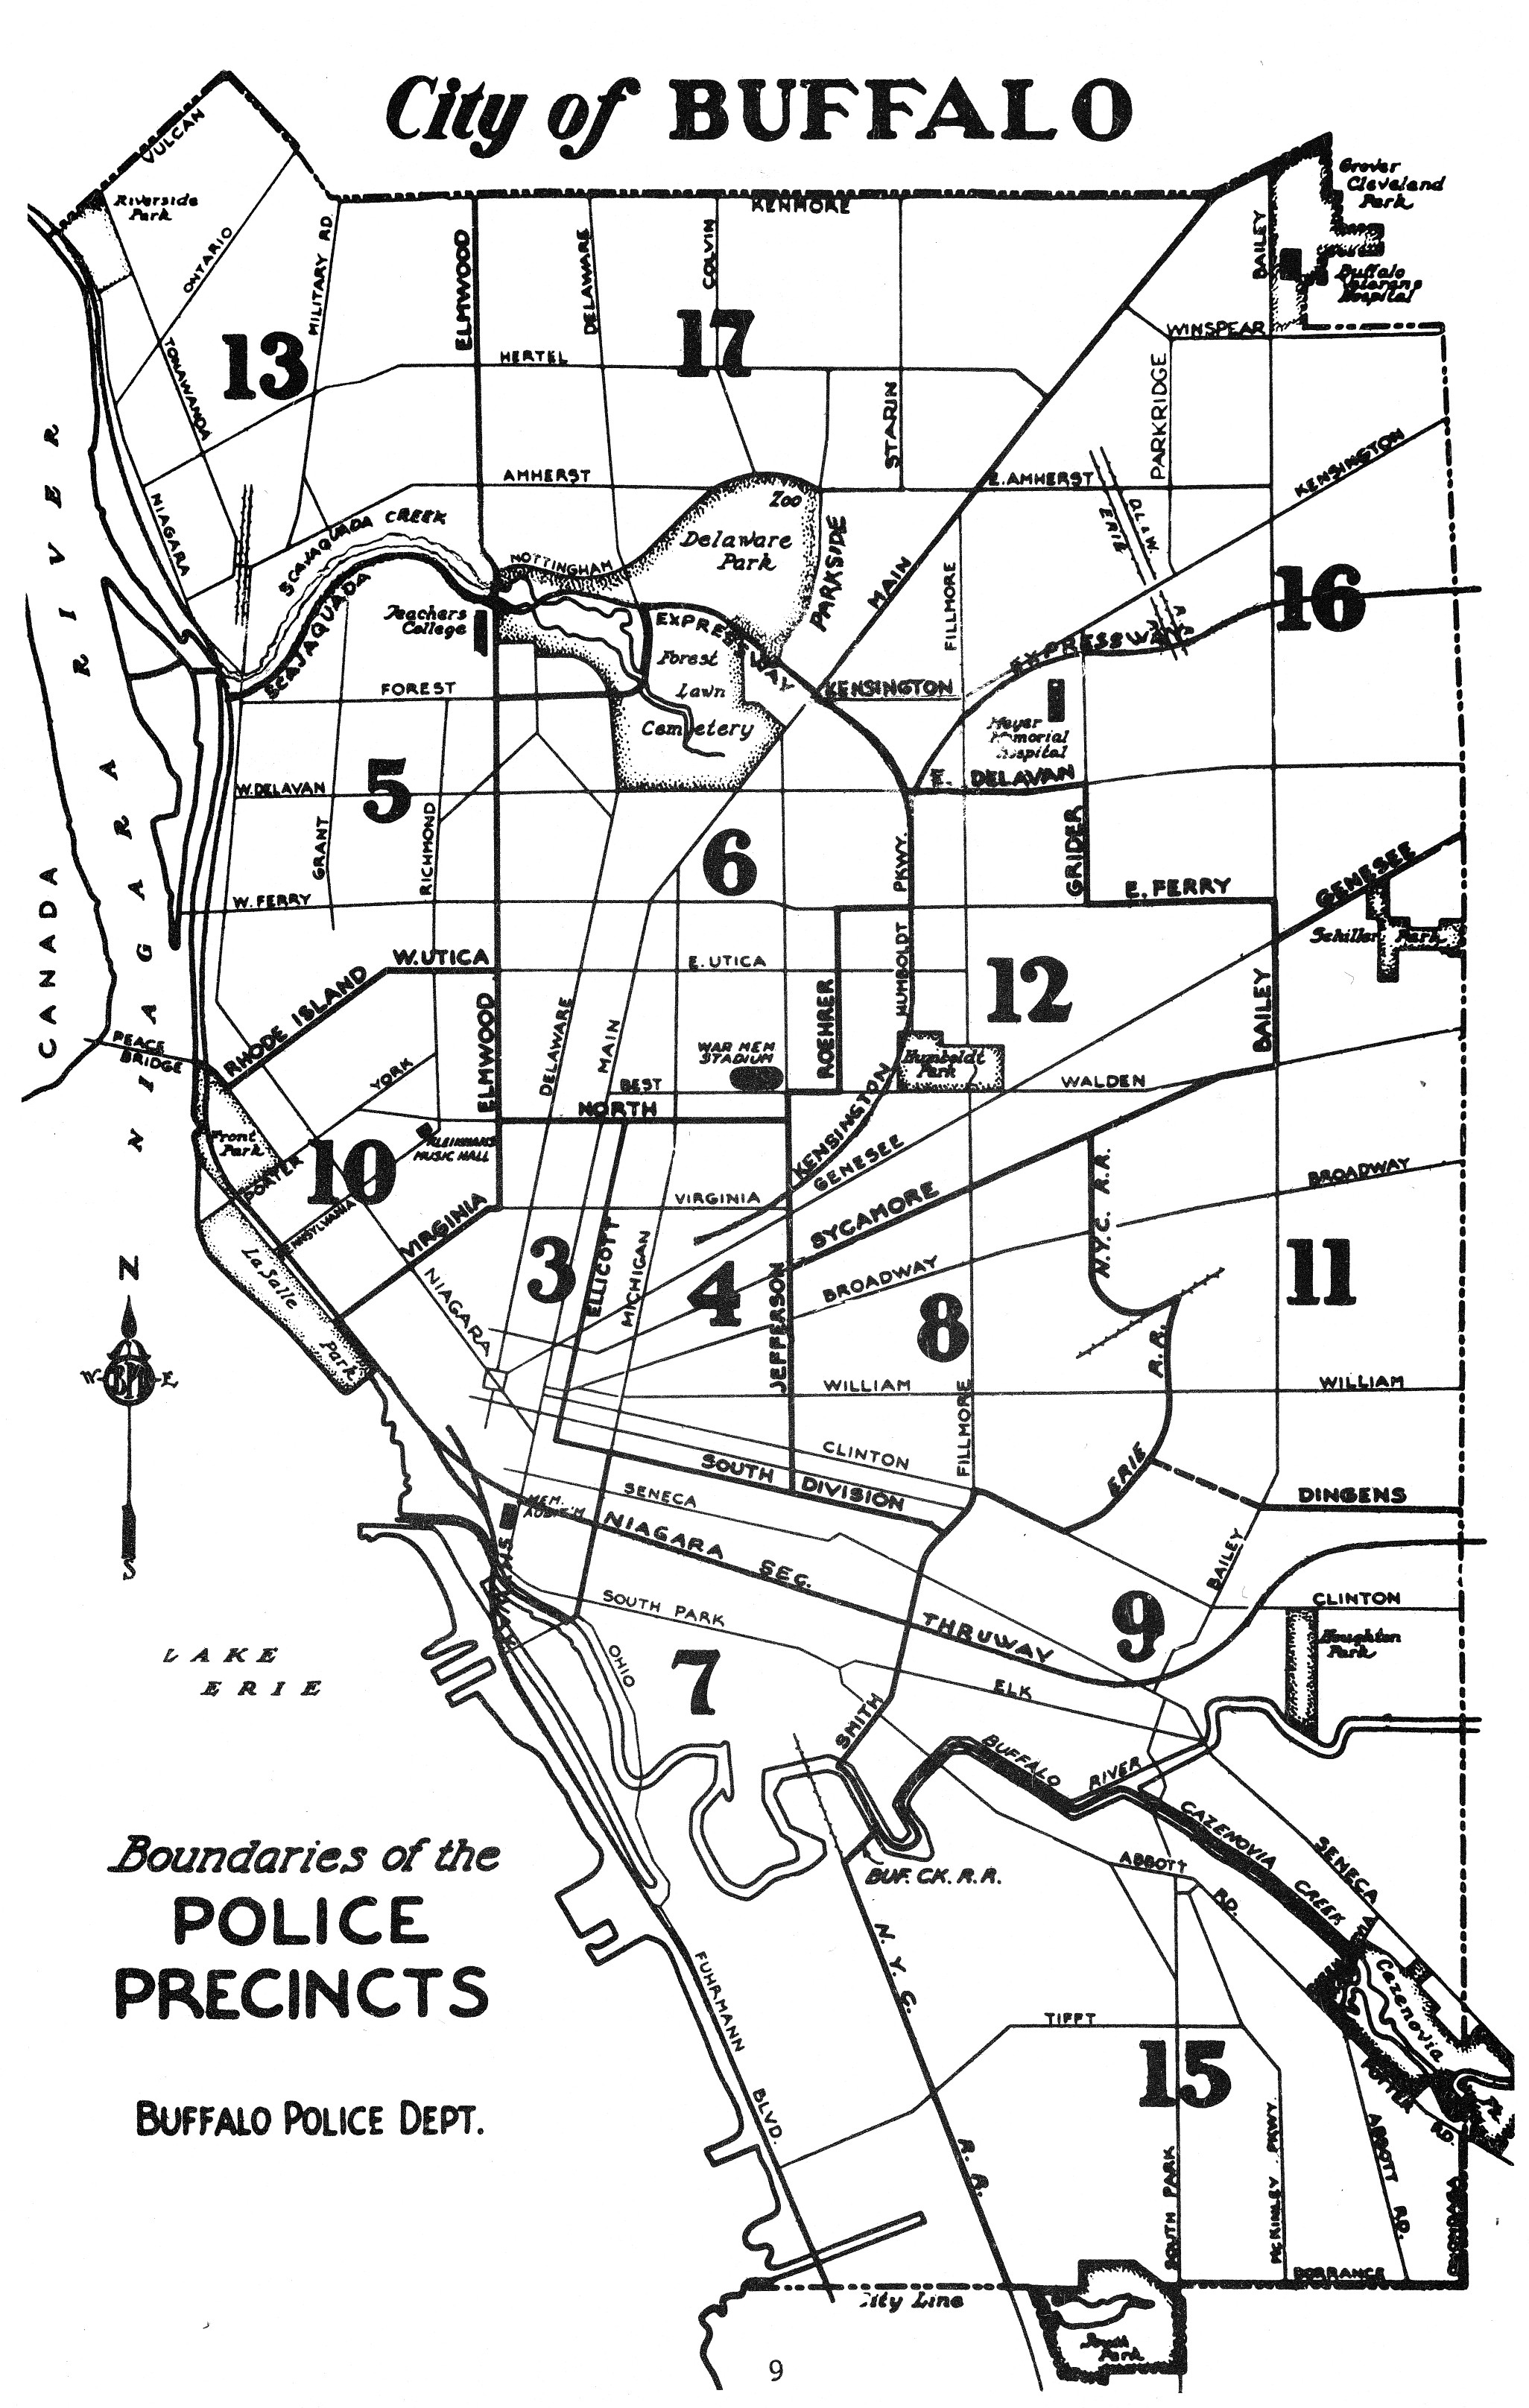 File:Buffalo Police Department Annual Report 1973 map.jpg